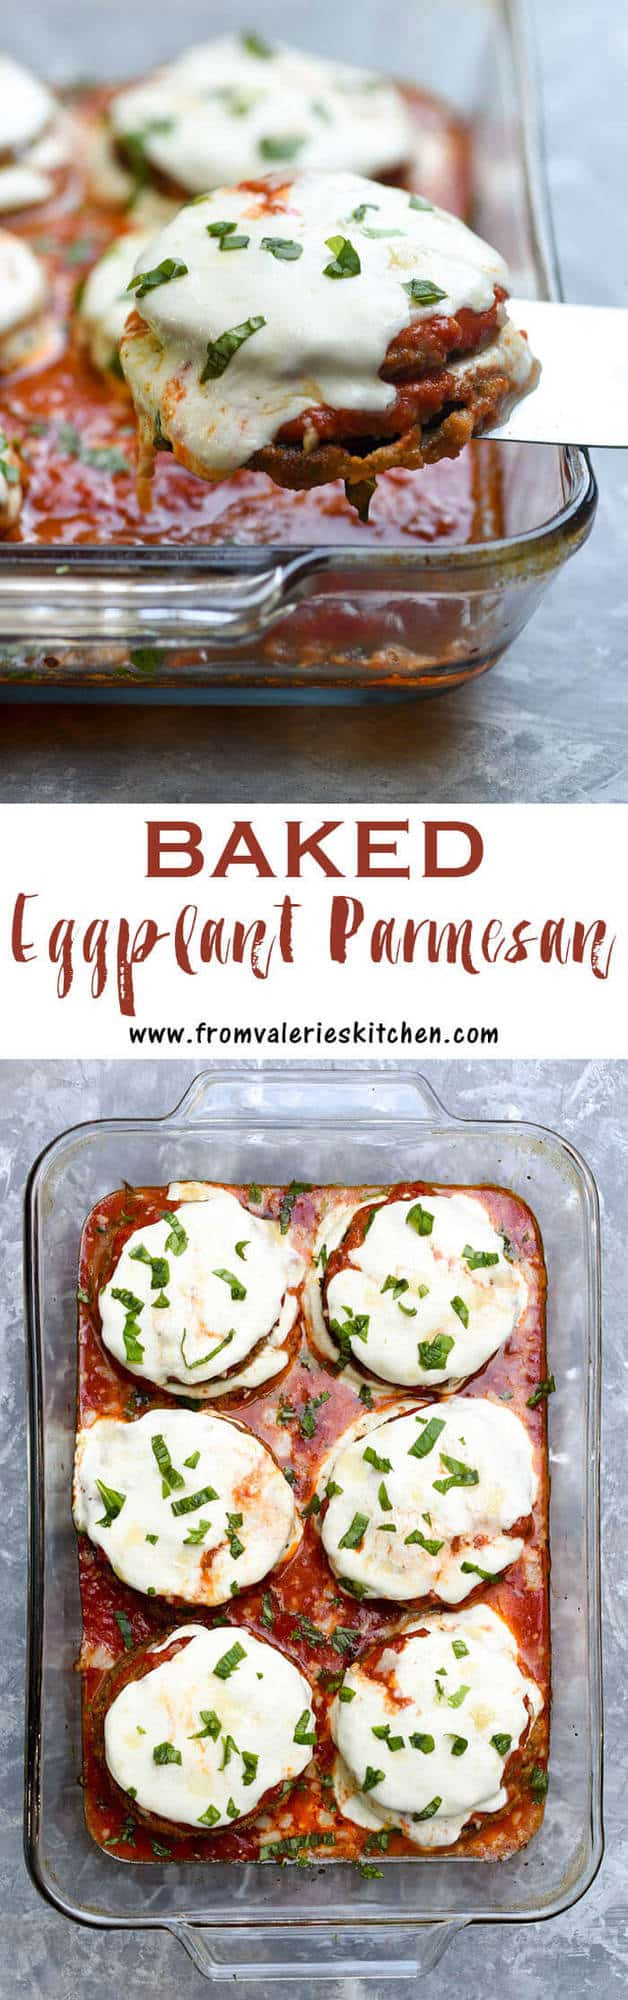 A two image vertical collage of Baked Eggplant Parmesan with overlay text.